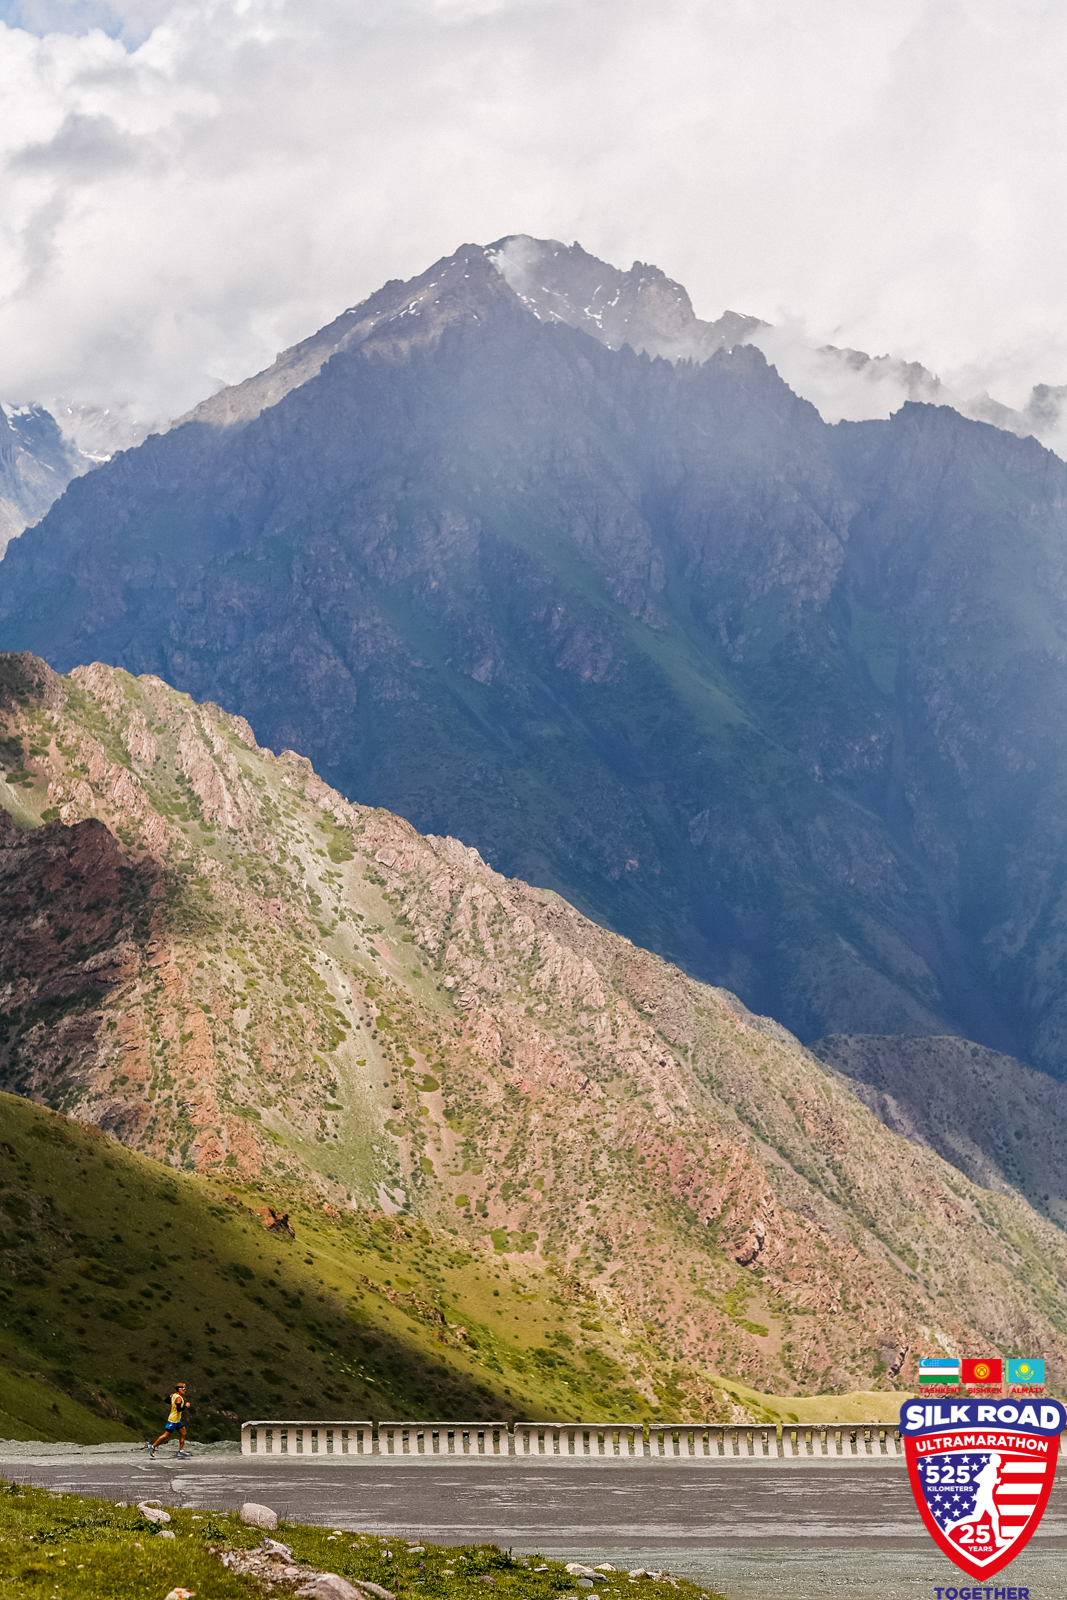 Dean is a tiny figure in a yellow shirt next to the towering mountains of the Kyrgyz Republic